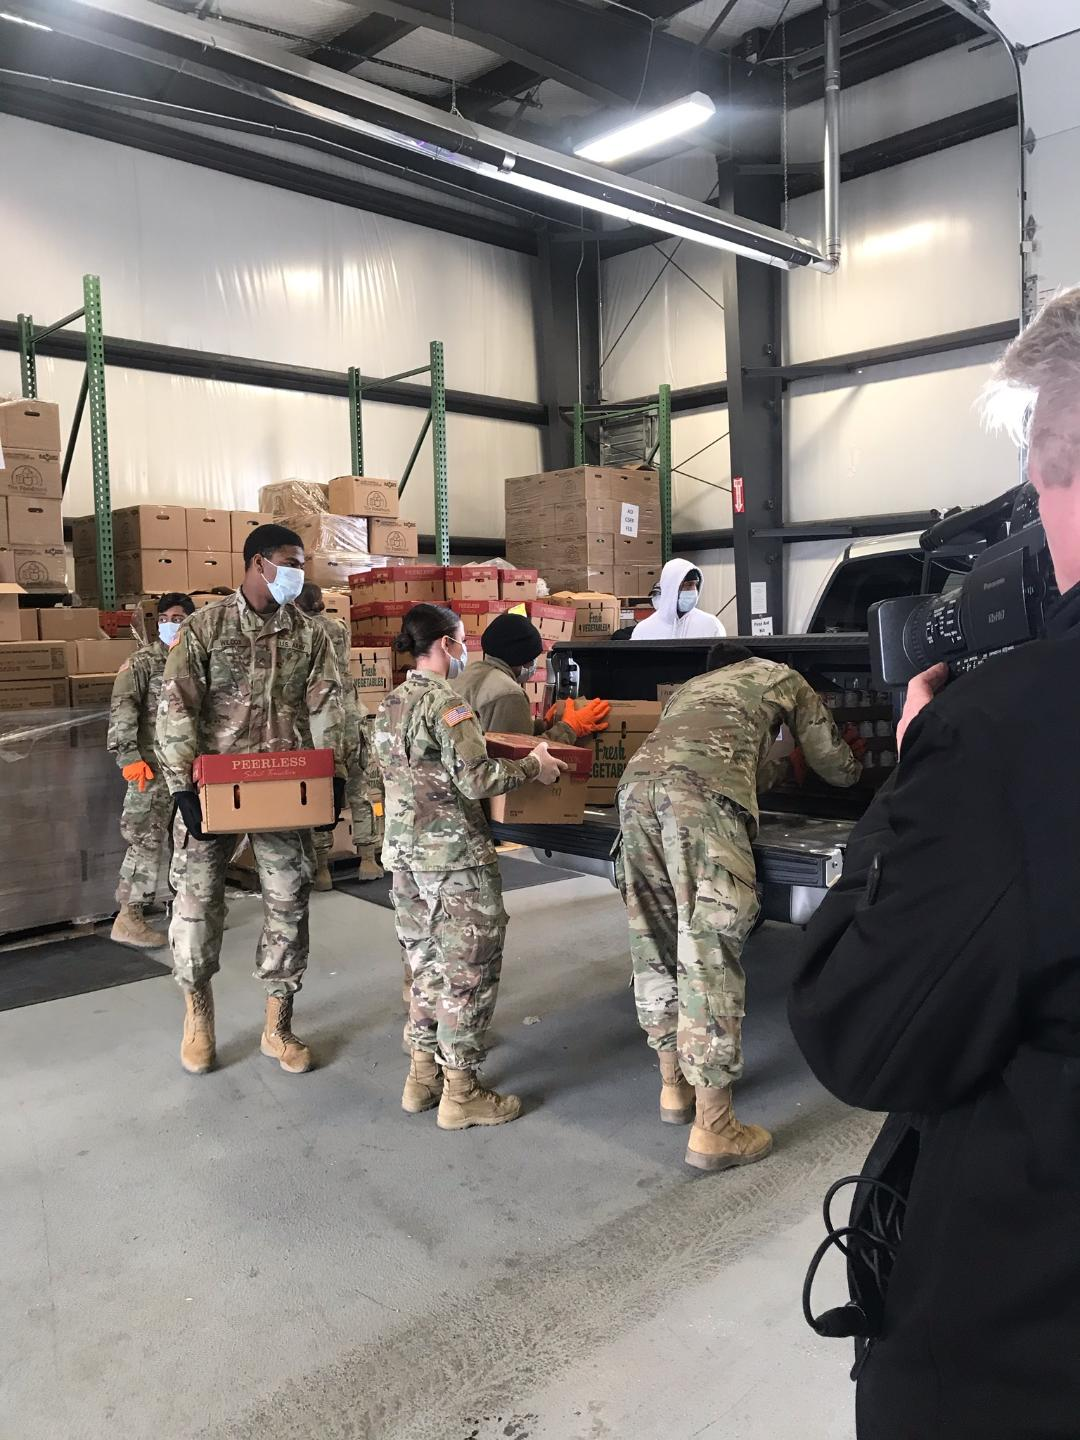 Soldiers load  boxes into truck inside warehouse.